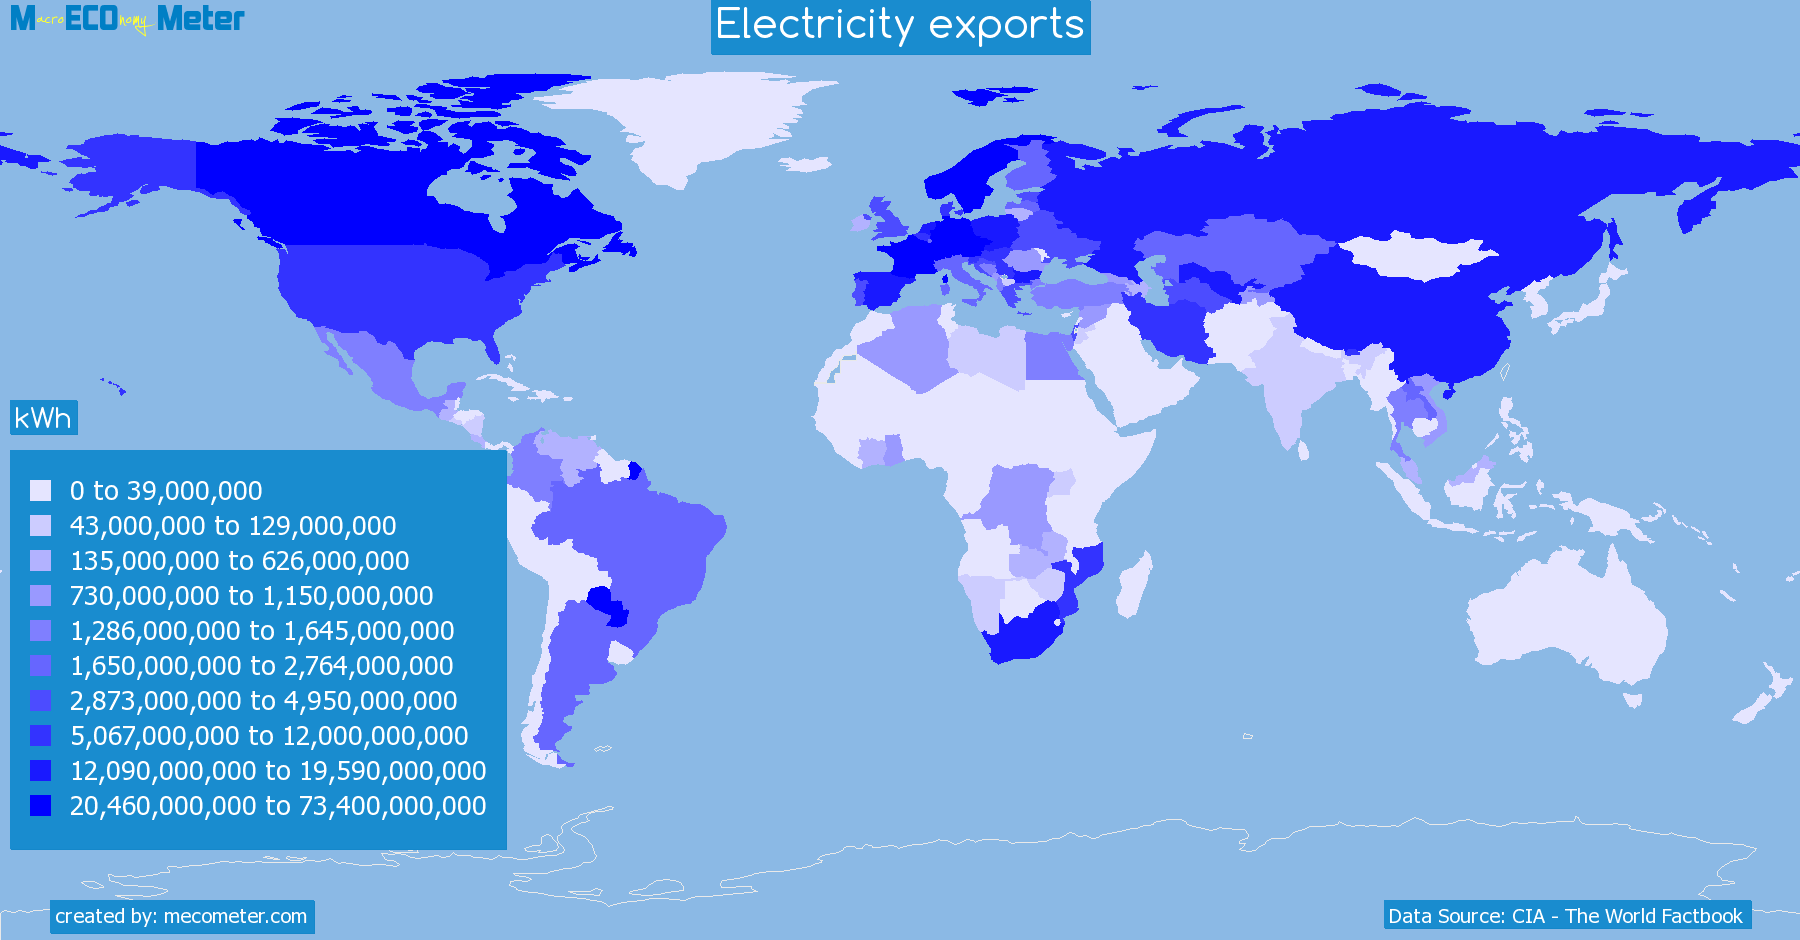 Electricity exports